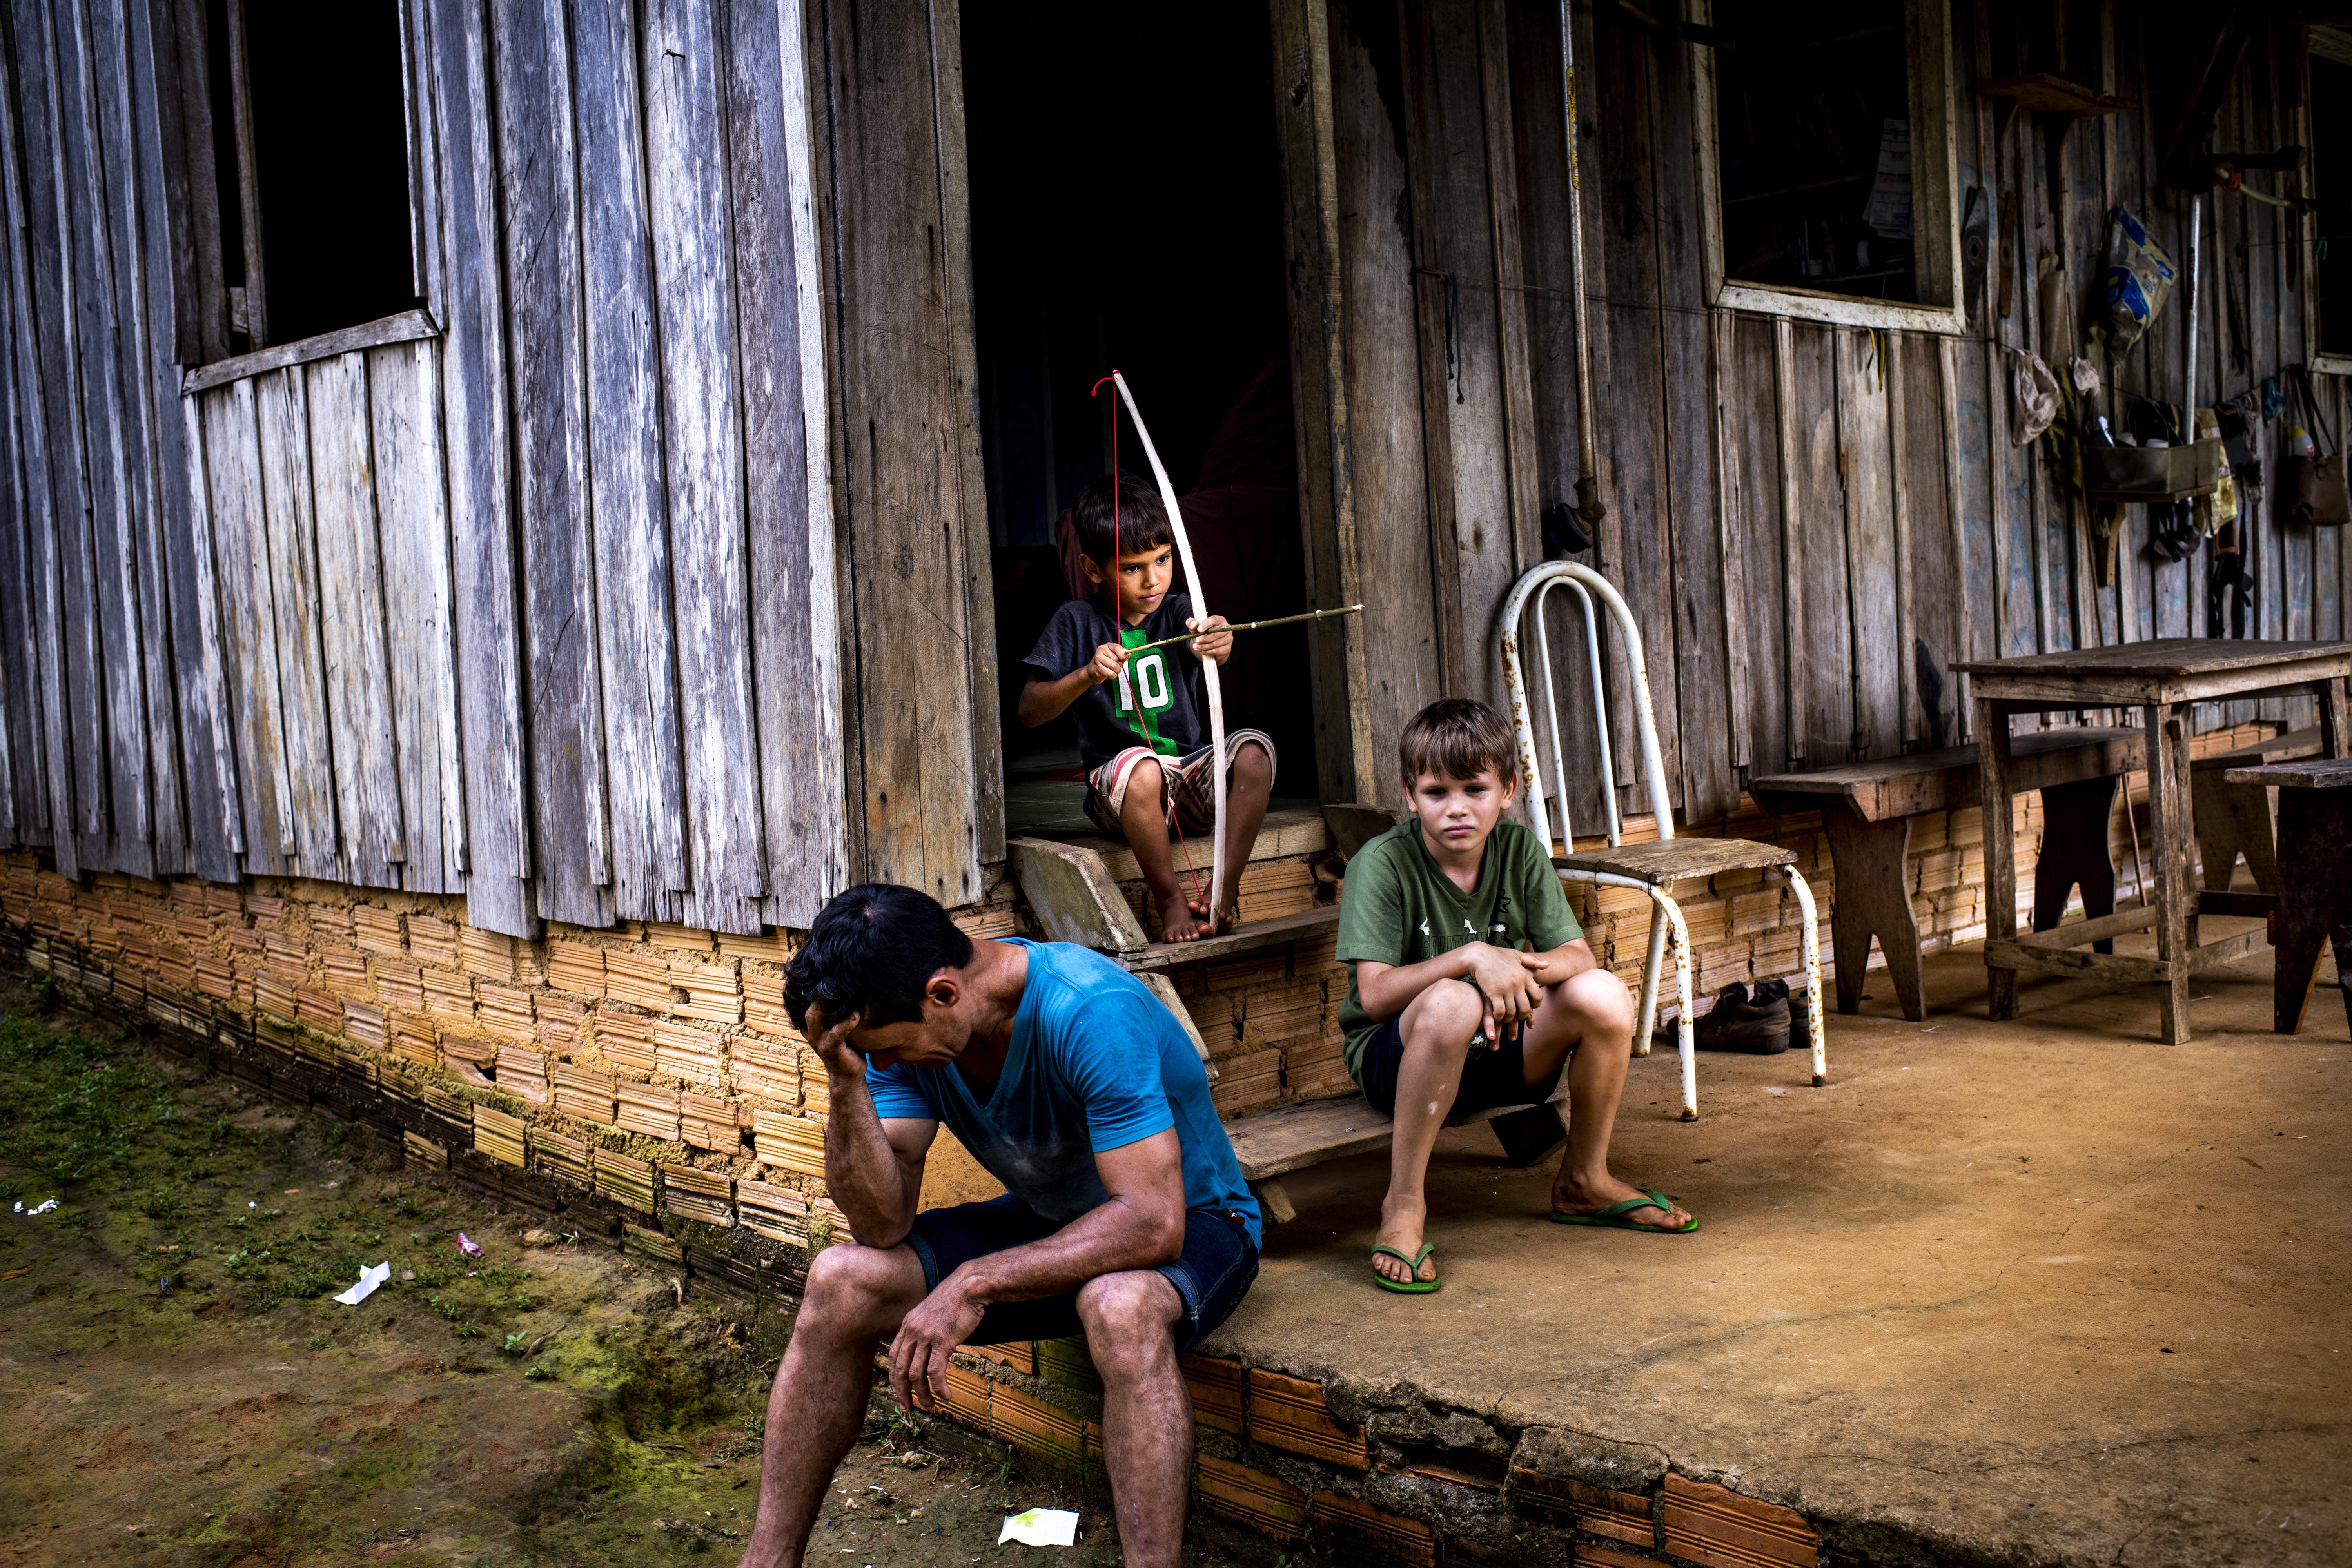 Rubber tappers work on government-protected land, which provides a bulwark against deforestation. But one rubber tapper, Marcelo Firmiano da Silva, photographed with two sons on Feb. 16, says 18 of his colleagues have been killed since 2002. Sept. 23 issue.